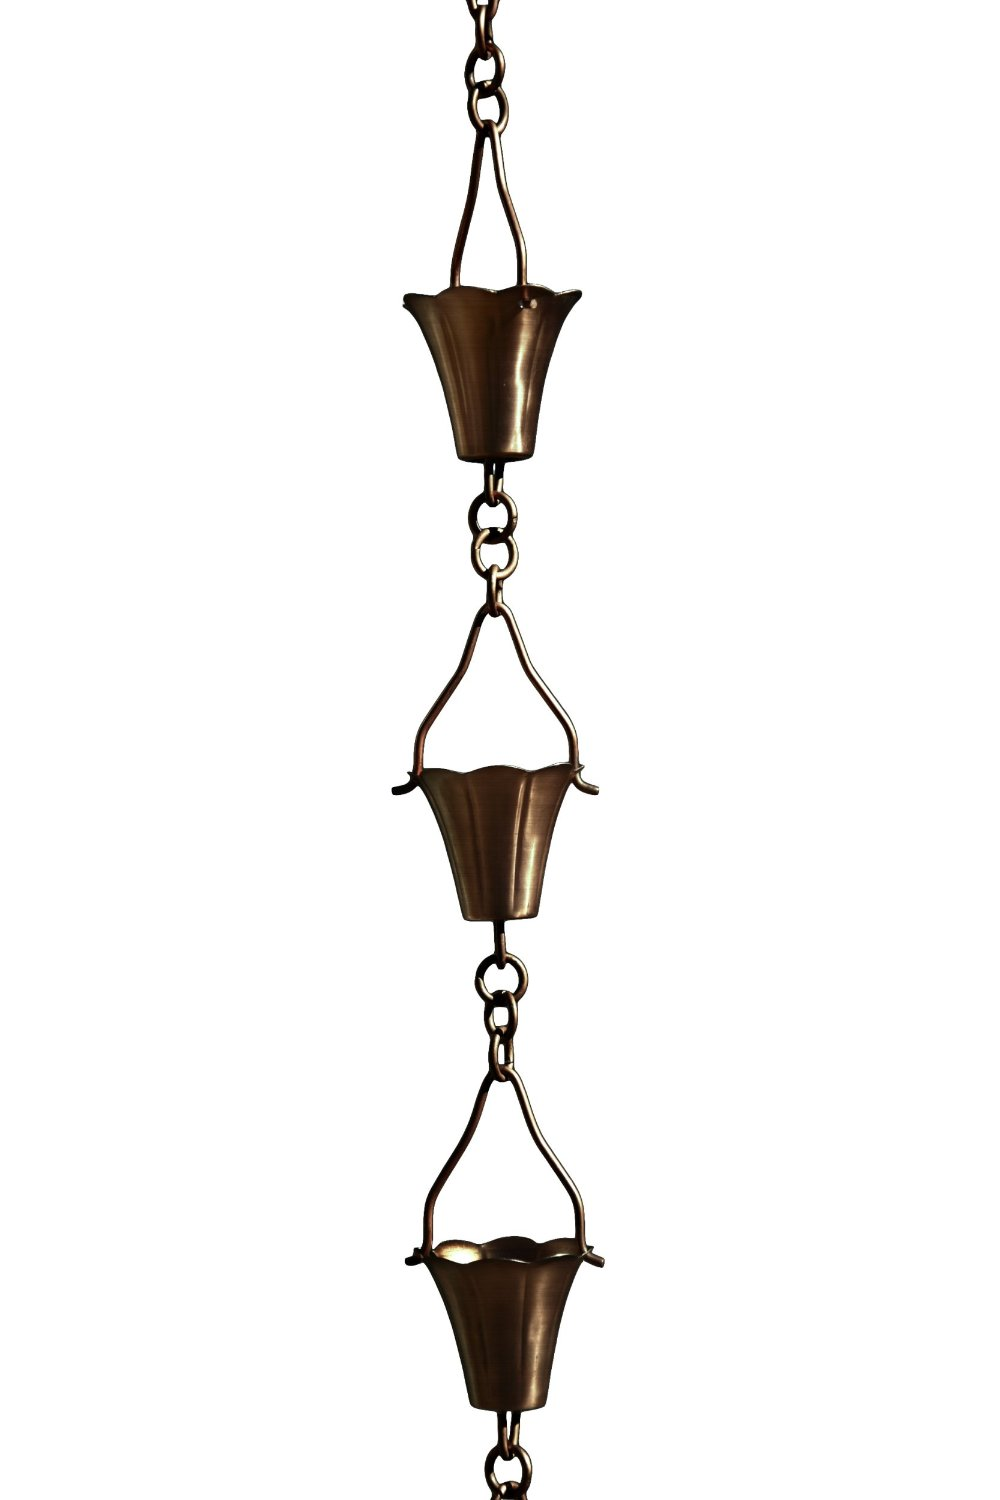 Patina Products R259 Antique Copper Fluted Cup Rain Chain Full Length